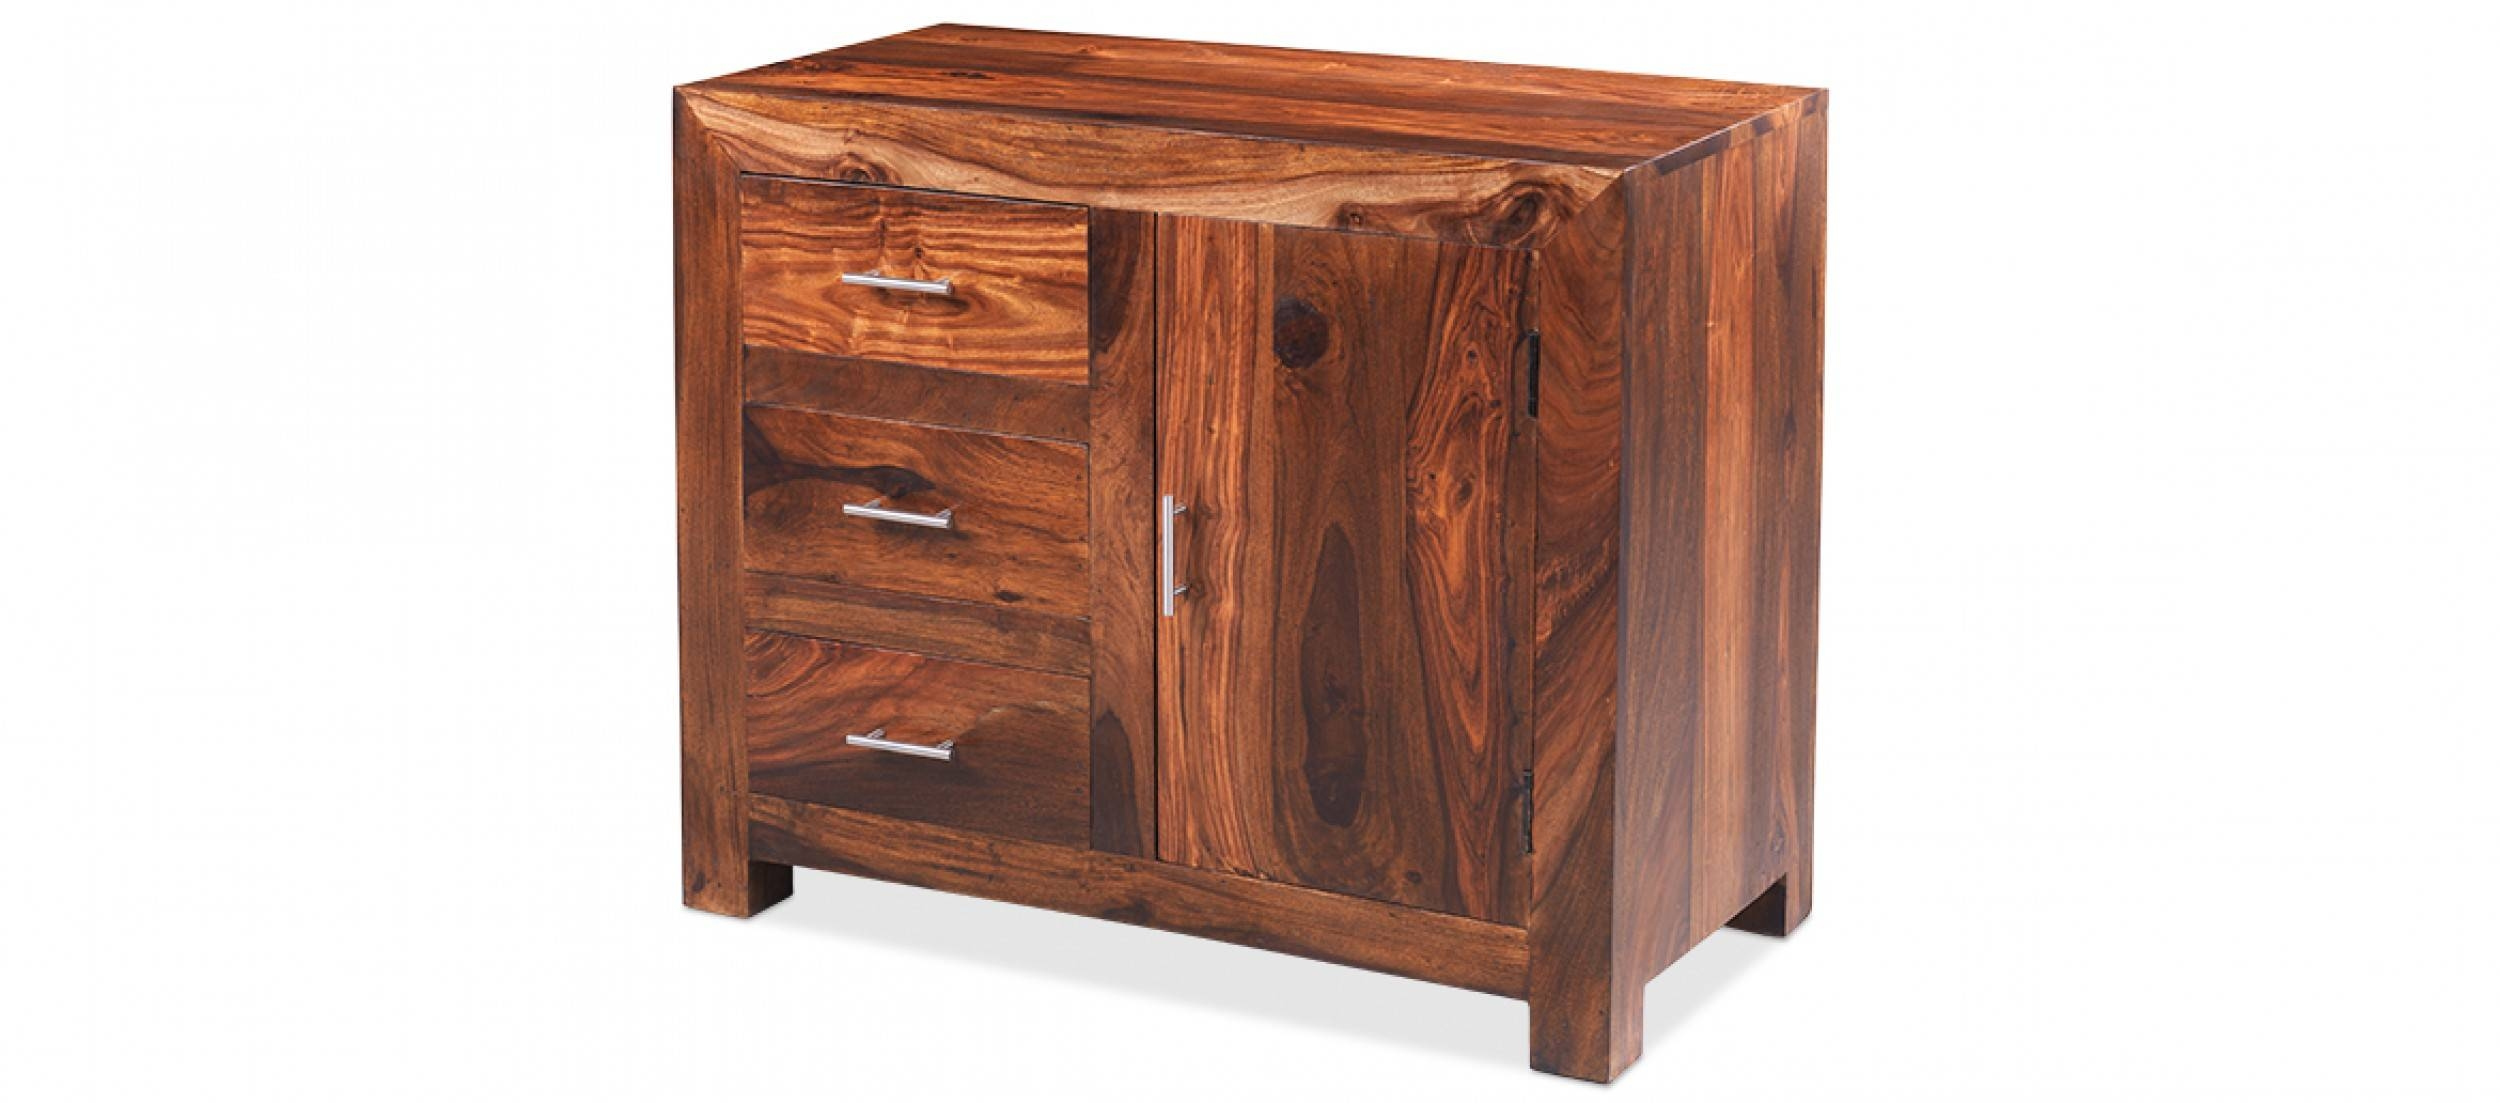 Cube Sheesham Small Sideboard | Quercus Living Regarding Sheesham Sideboards (View 6 of 30)